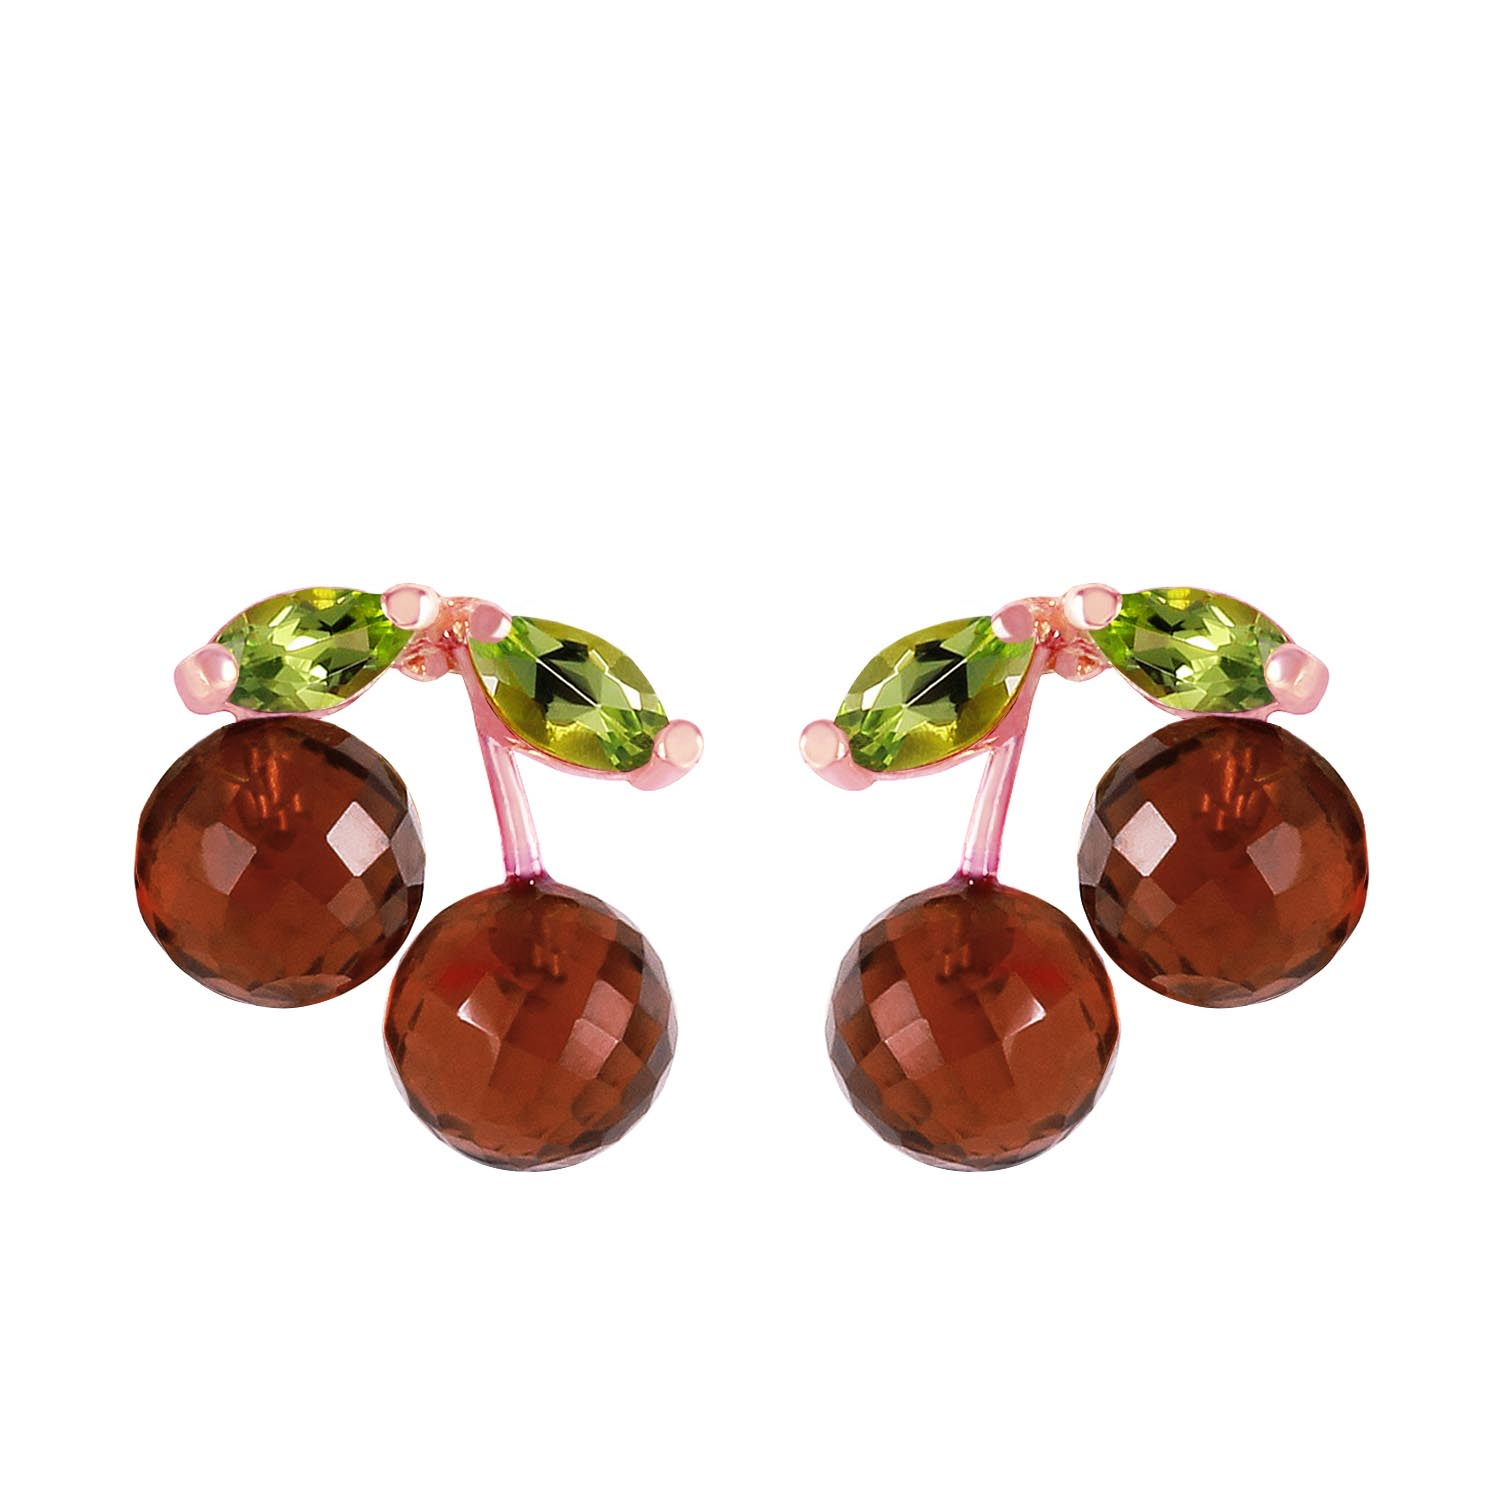 Garnet and Peridot Cherry Drop Stud Earrings 2.9ctw in 9ct Rose Gold